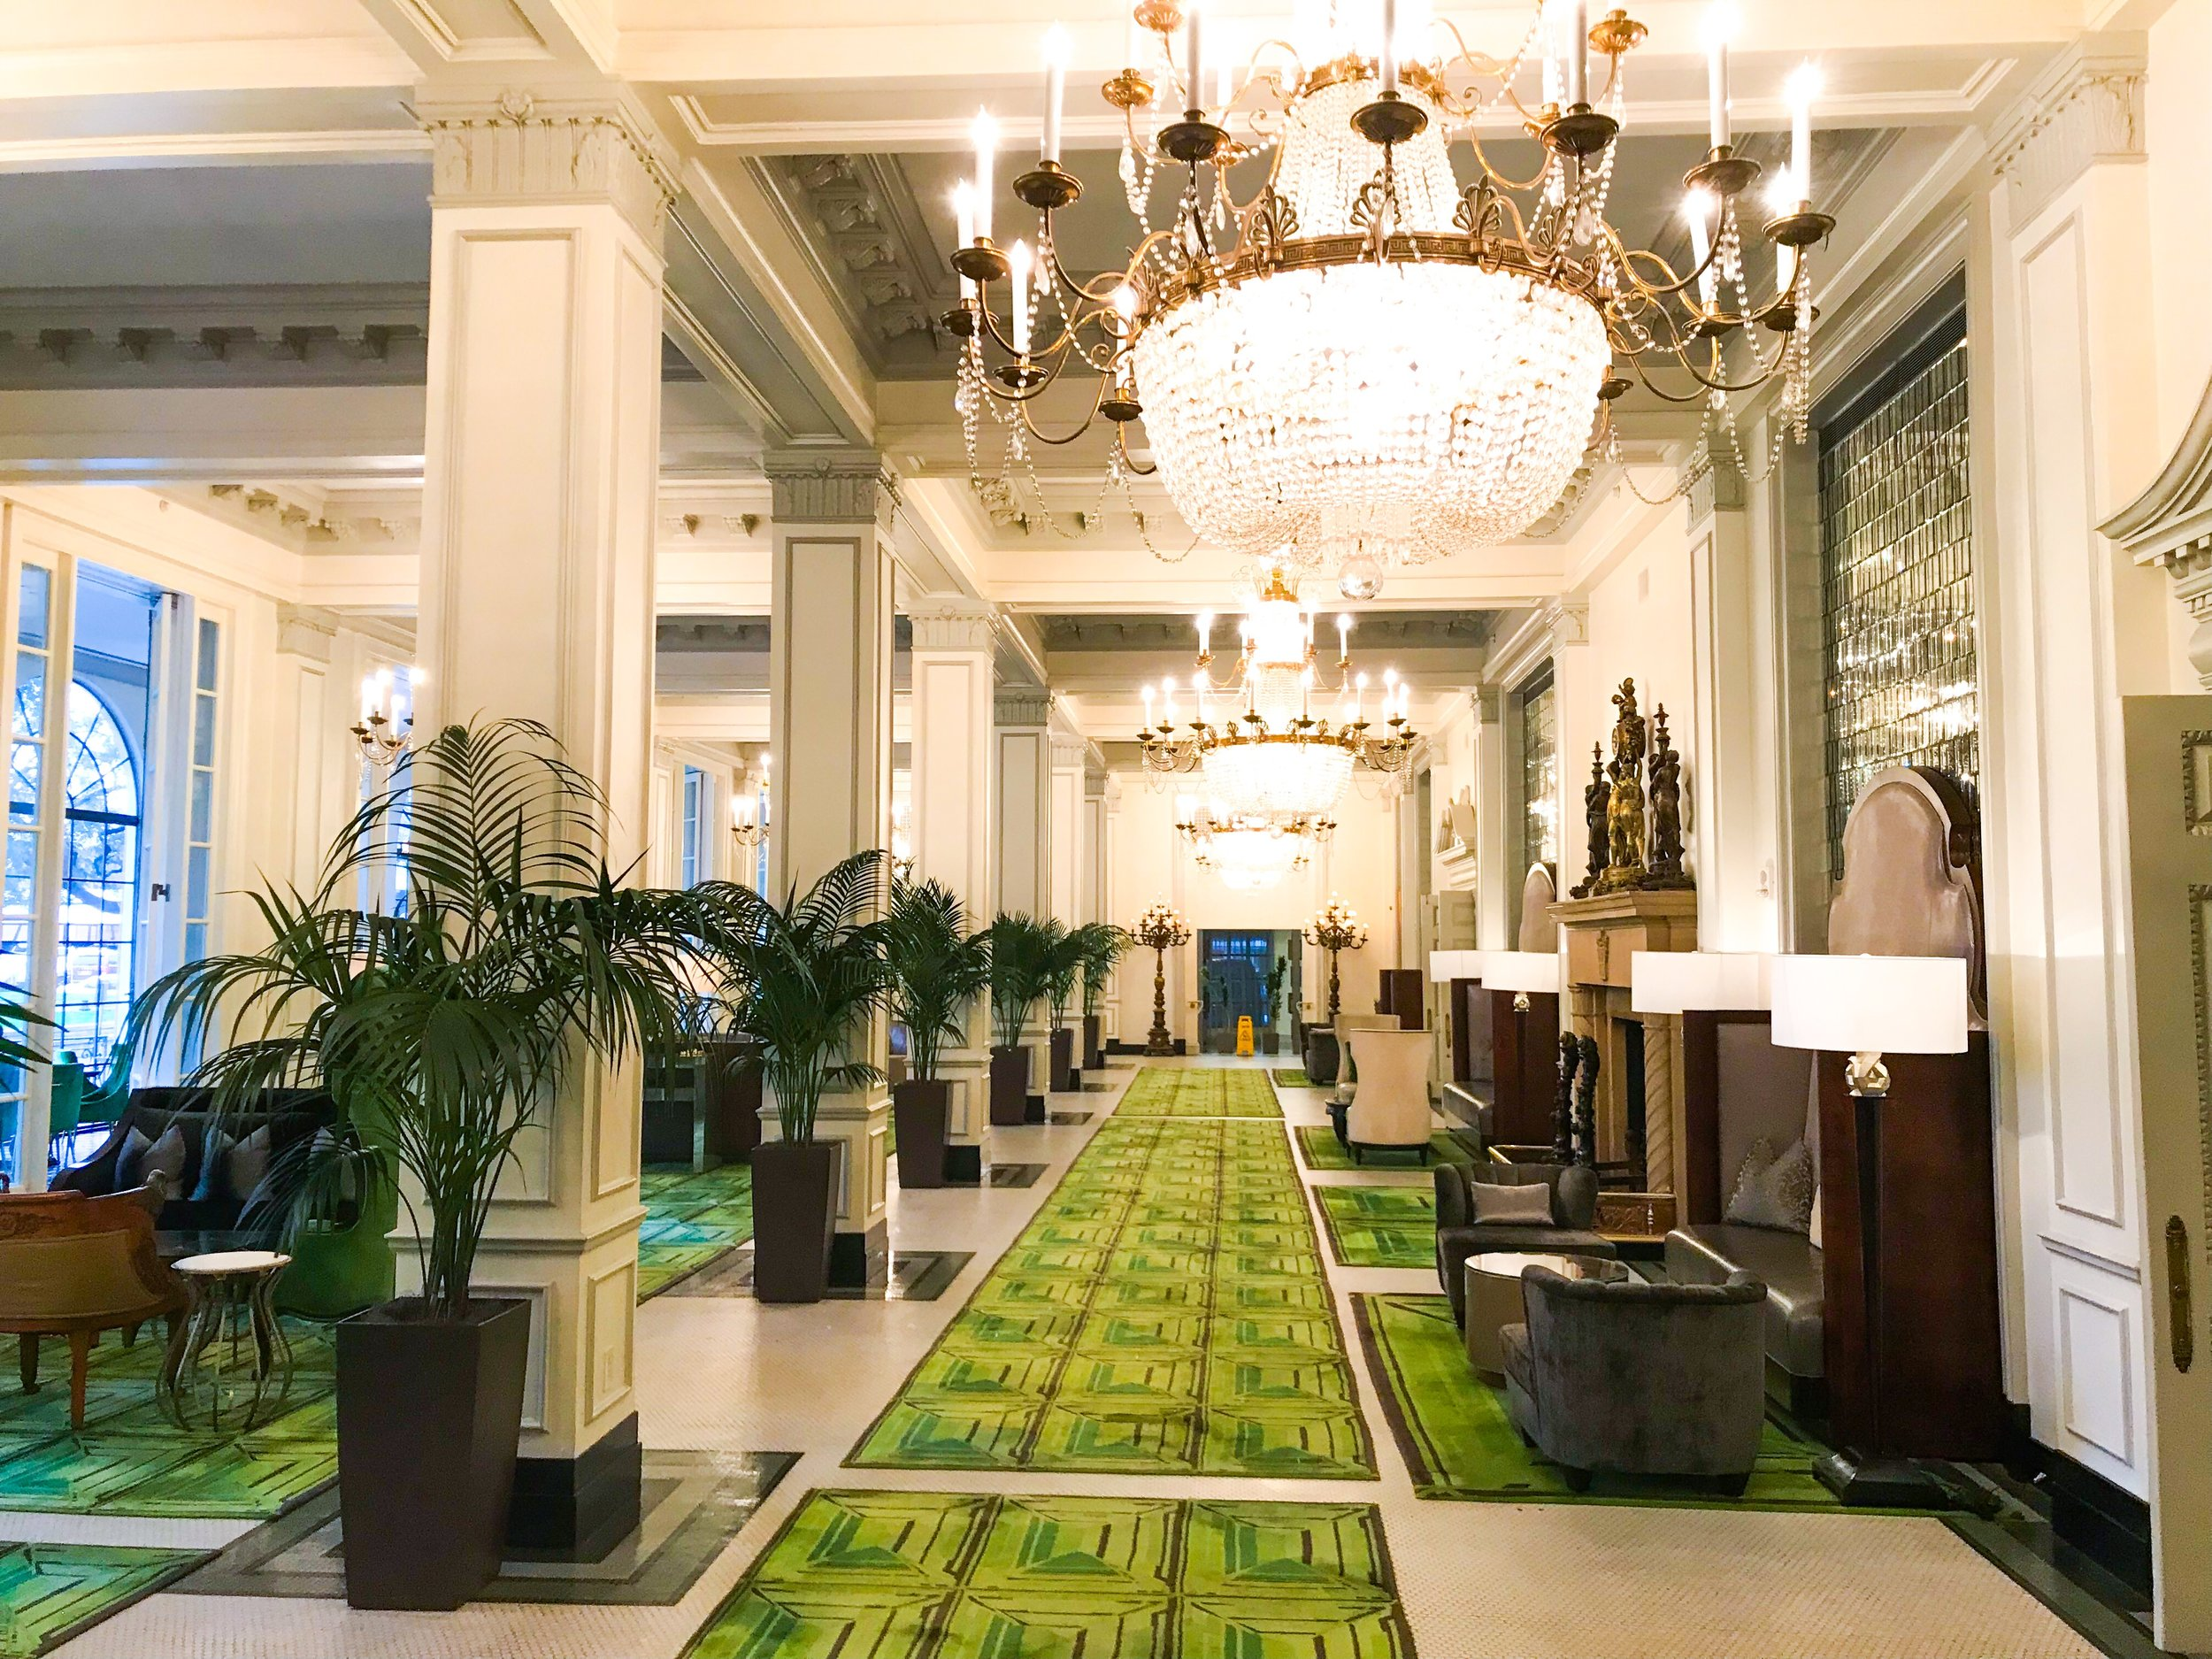 Another view of the luxuriously appointed lobby.